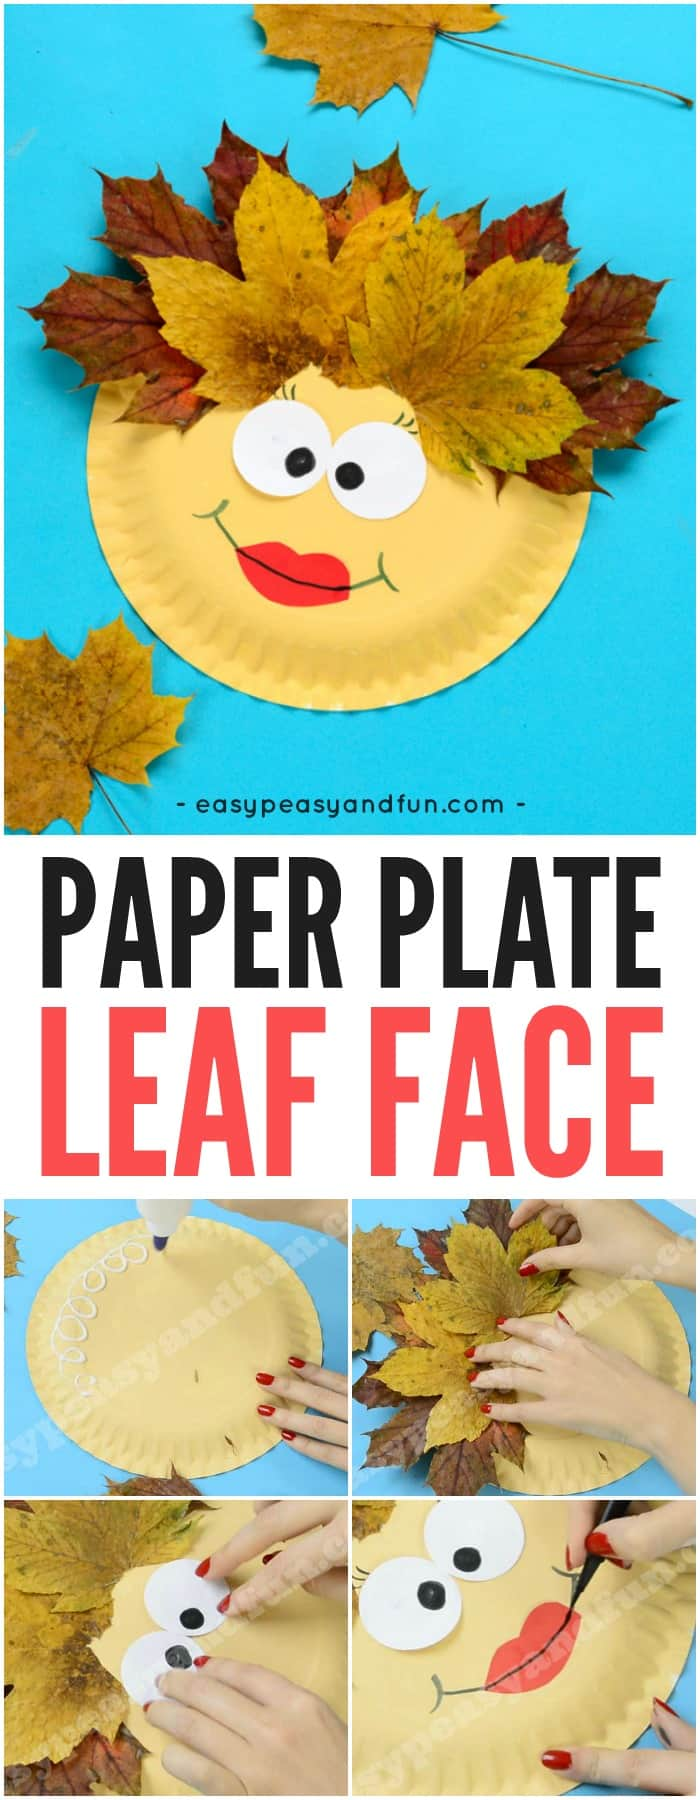 Leaf Face Paper Plate Craft for Kids. Fun Fall leaf activity for kids to make